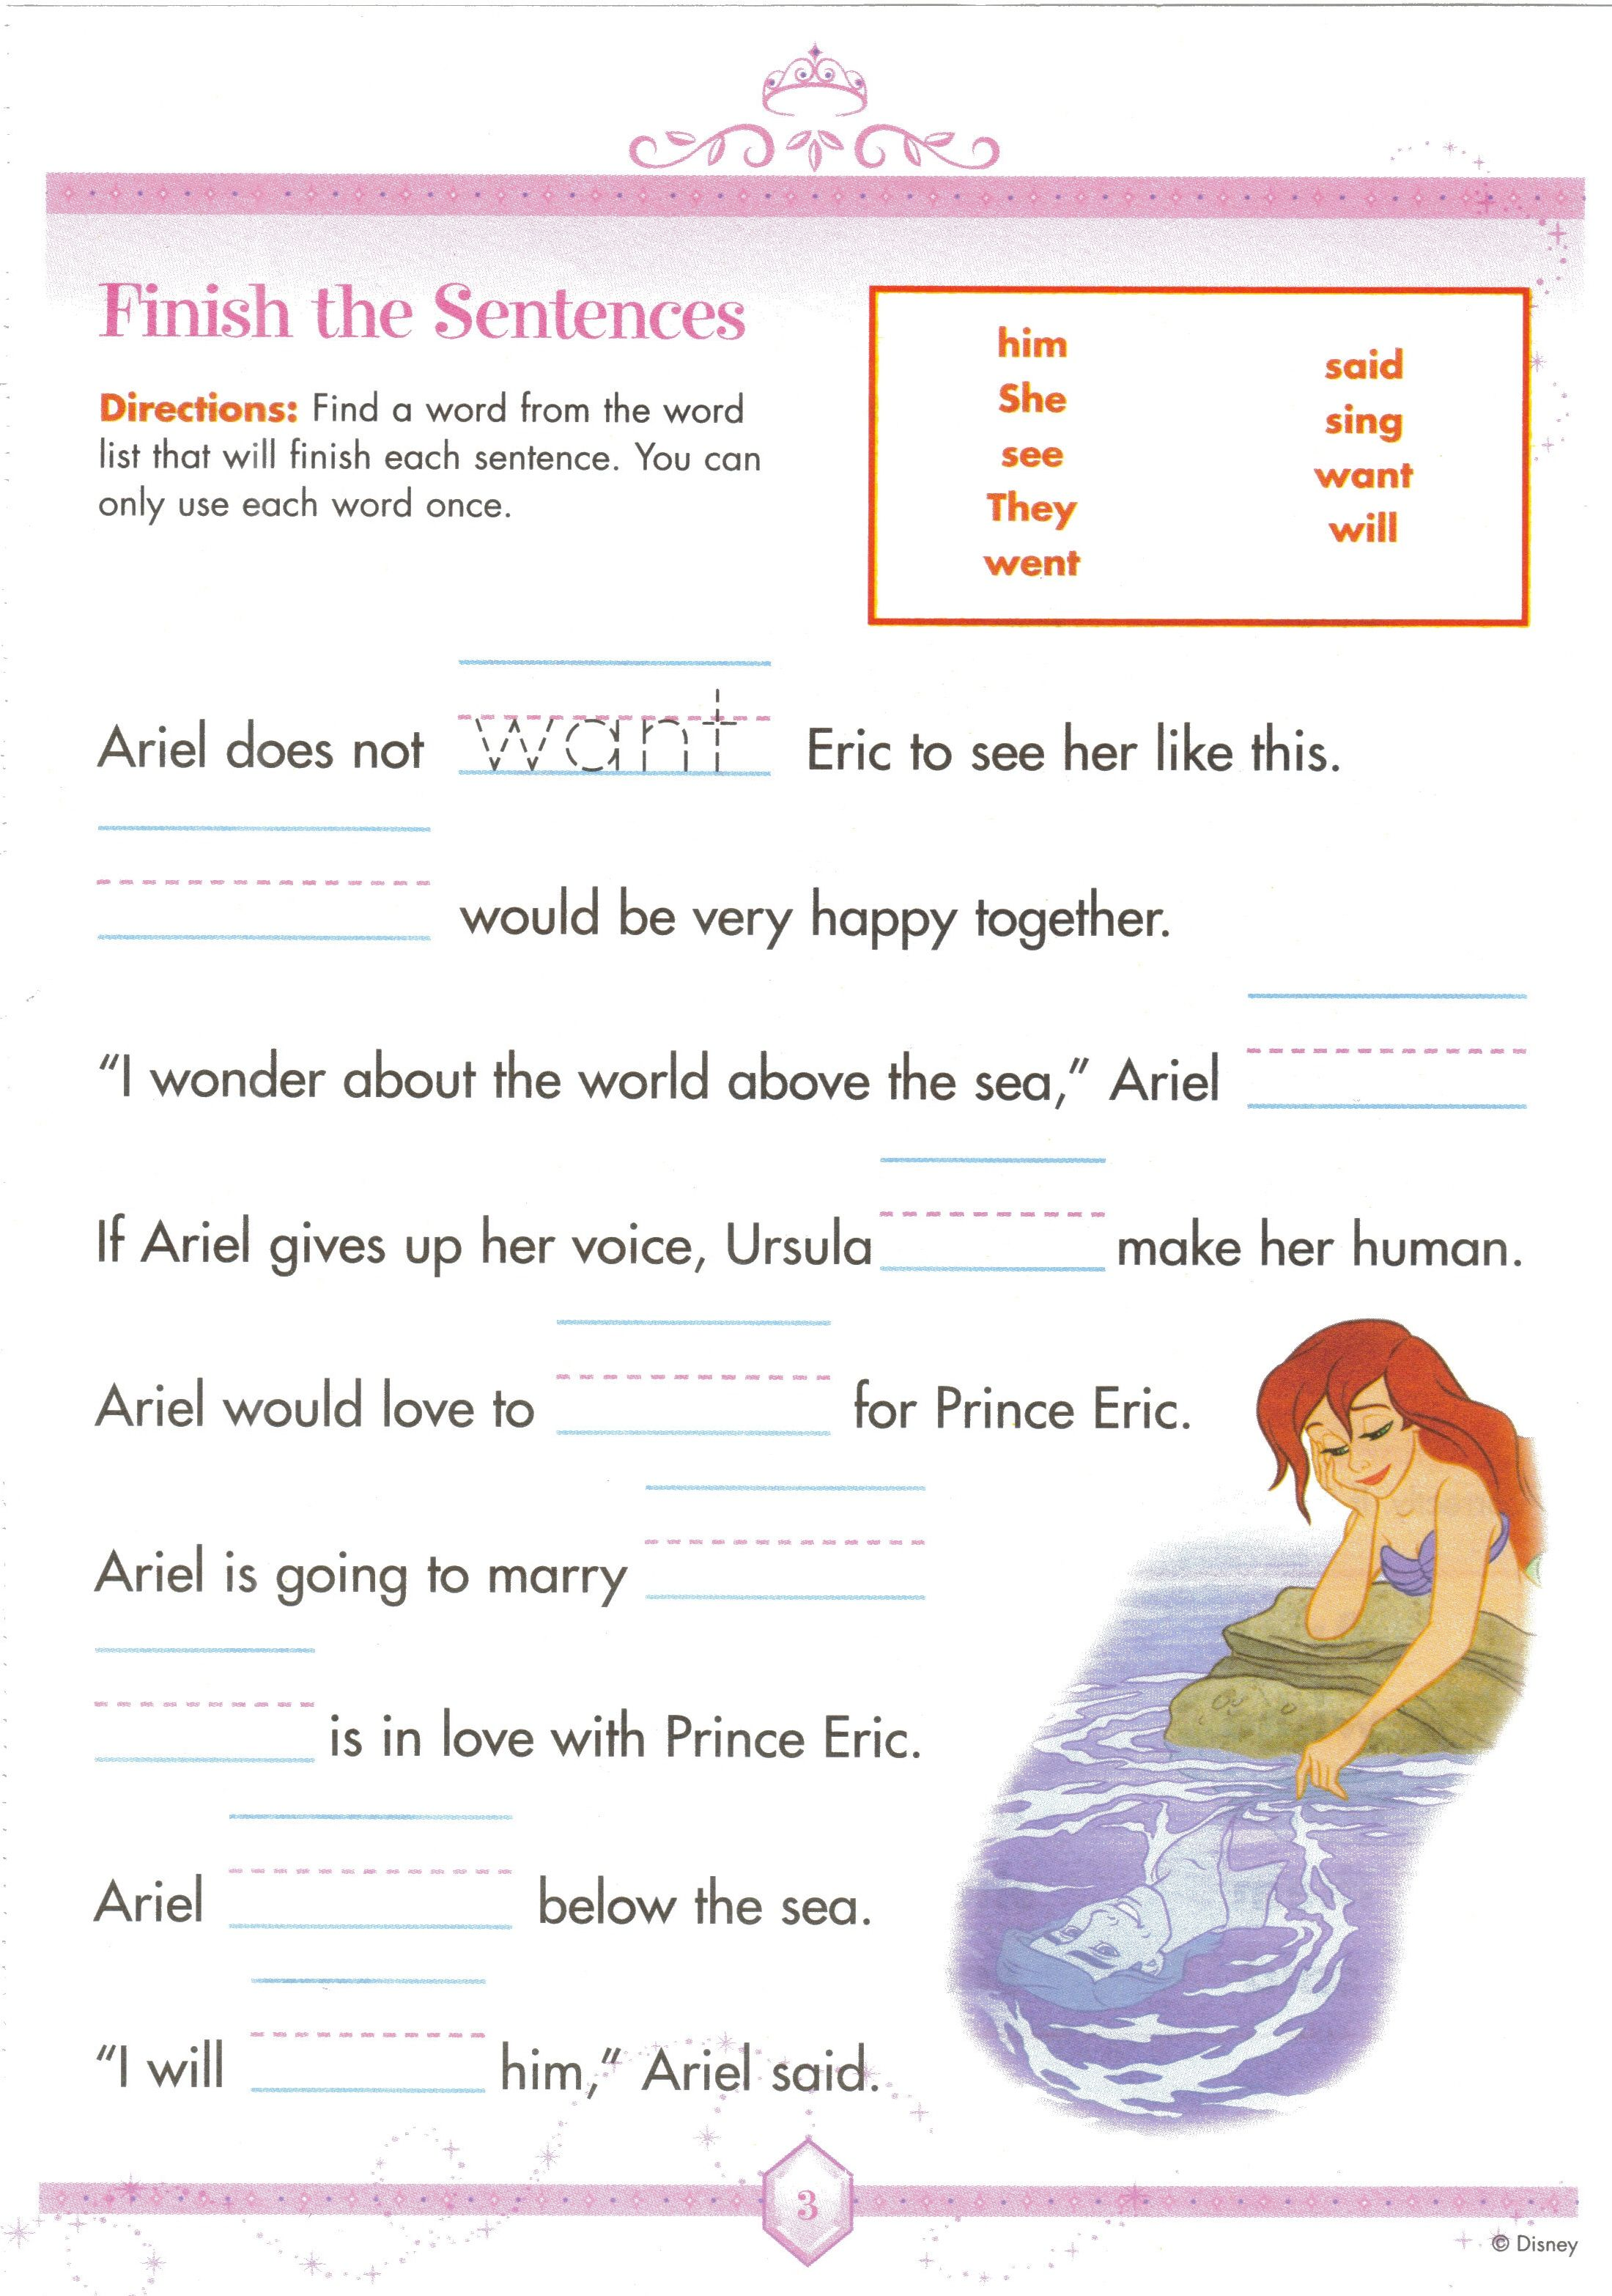 Weirdmailus  Terrific  Images About Worksheets On Pinterest  Fun Facts For Kids  With Marvelous  Images About Worksheets On Pinterest  Fun Facts For Kids Earth Day Worksheets And Jungles With Divine Kindergarten Math Facts Worksheets Also Reading Log Worksheets In Addition Atomic Worksheet And Step  Aa Worksheet As Well As Number Order Worksheets Additionally Number Story Worksheets For First Grade From Pinterestcom With Weirdmailus  Marvelous  Images About Worksheets On Pinterest  Fun Facts For Kids  With Divine  Images About Worksheets On Pinterest  Fun Facts For Kids Earth Day Worksheets And Jungles And Terrific Kindergarten Math Facts Worksheets Also Reading Log Worksheets In Addition Atomic Worksheet From Pinterestcom